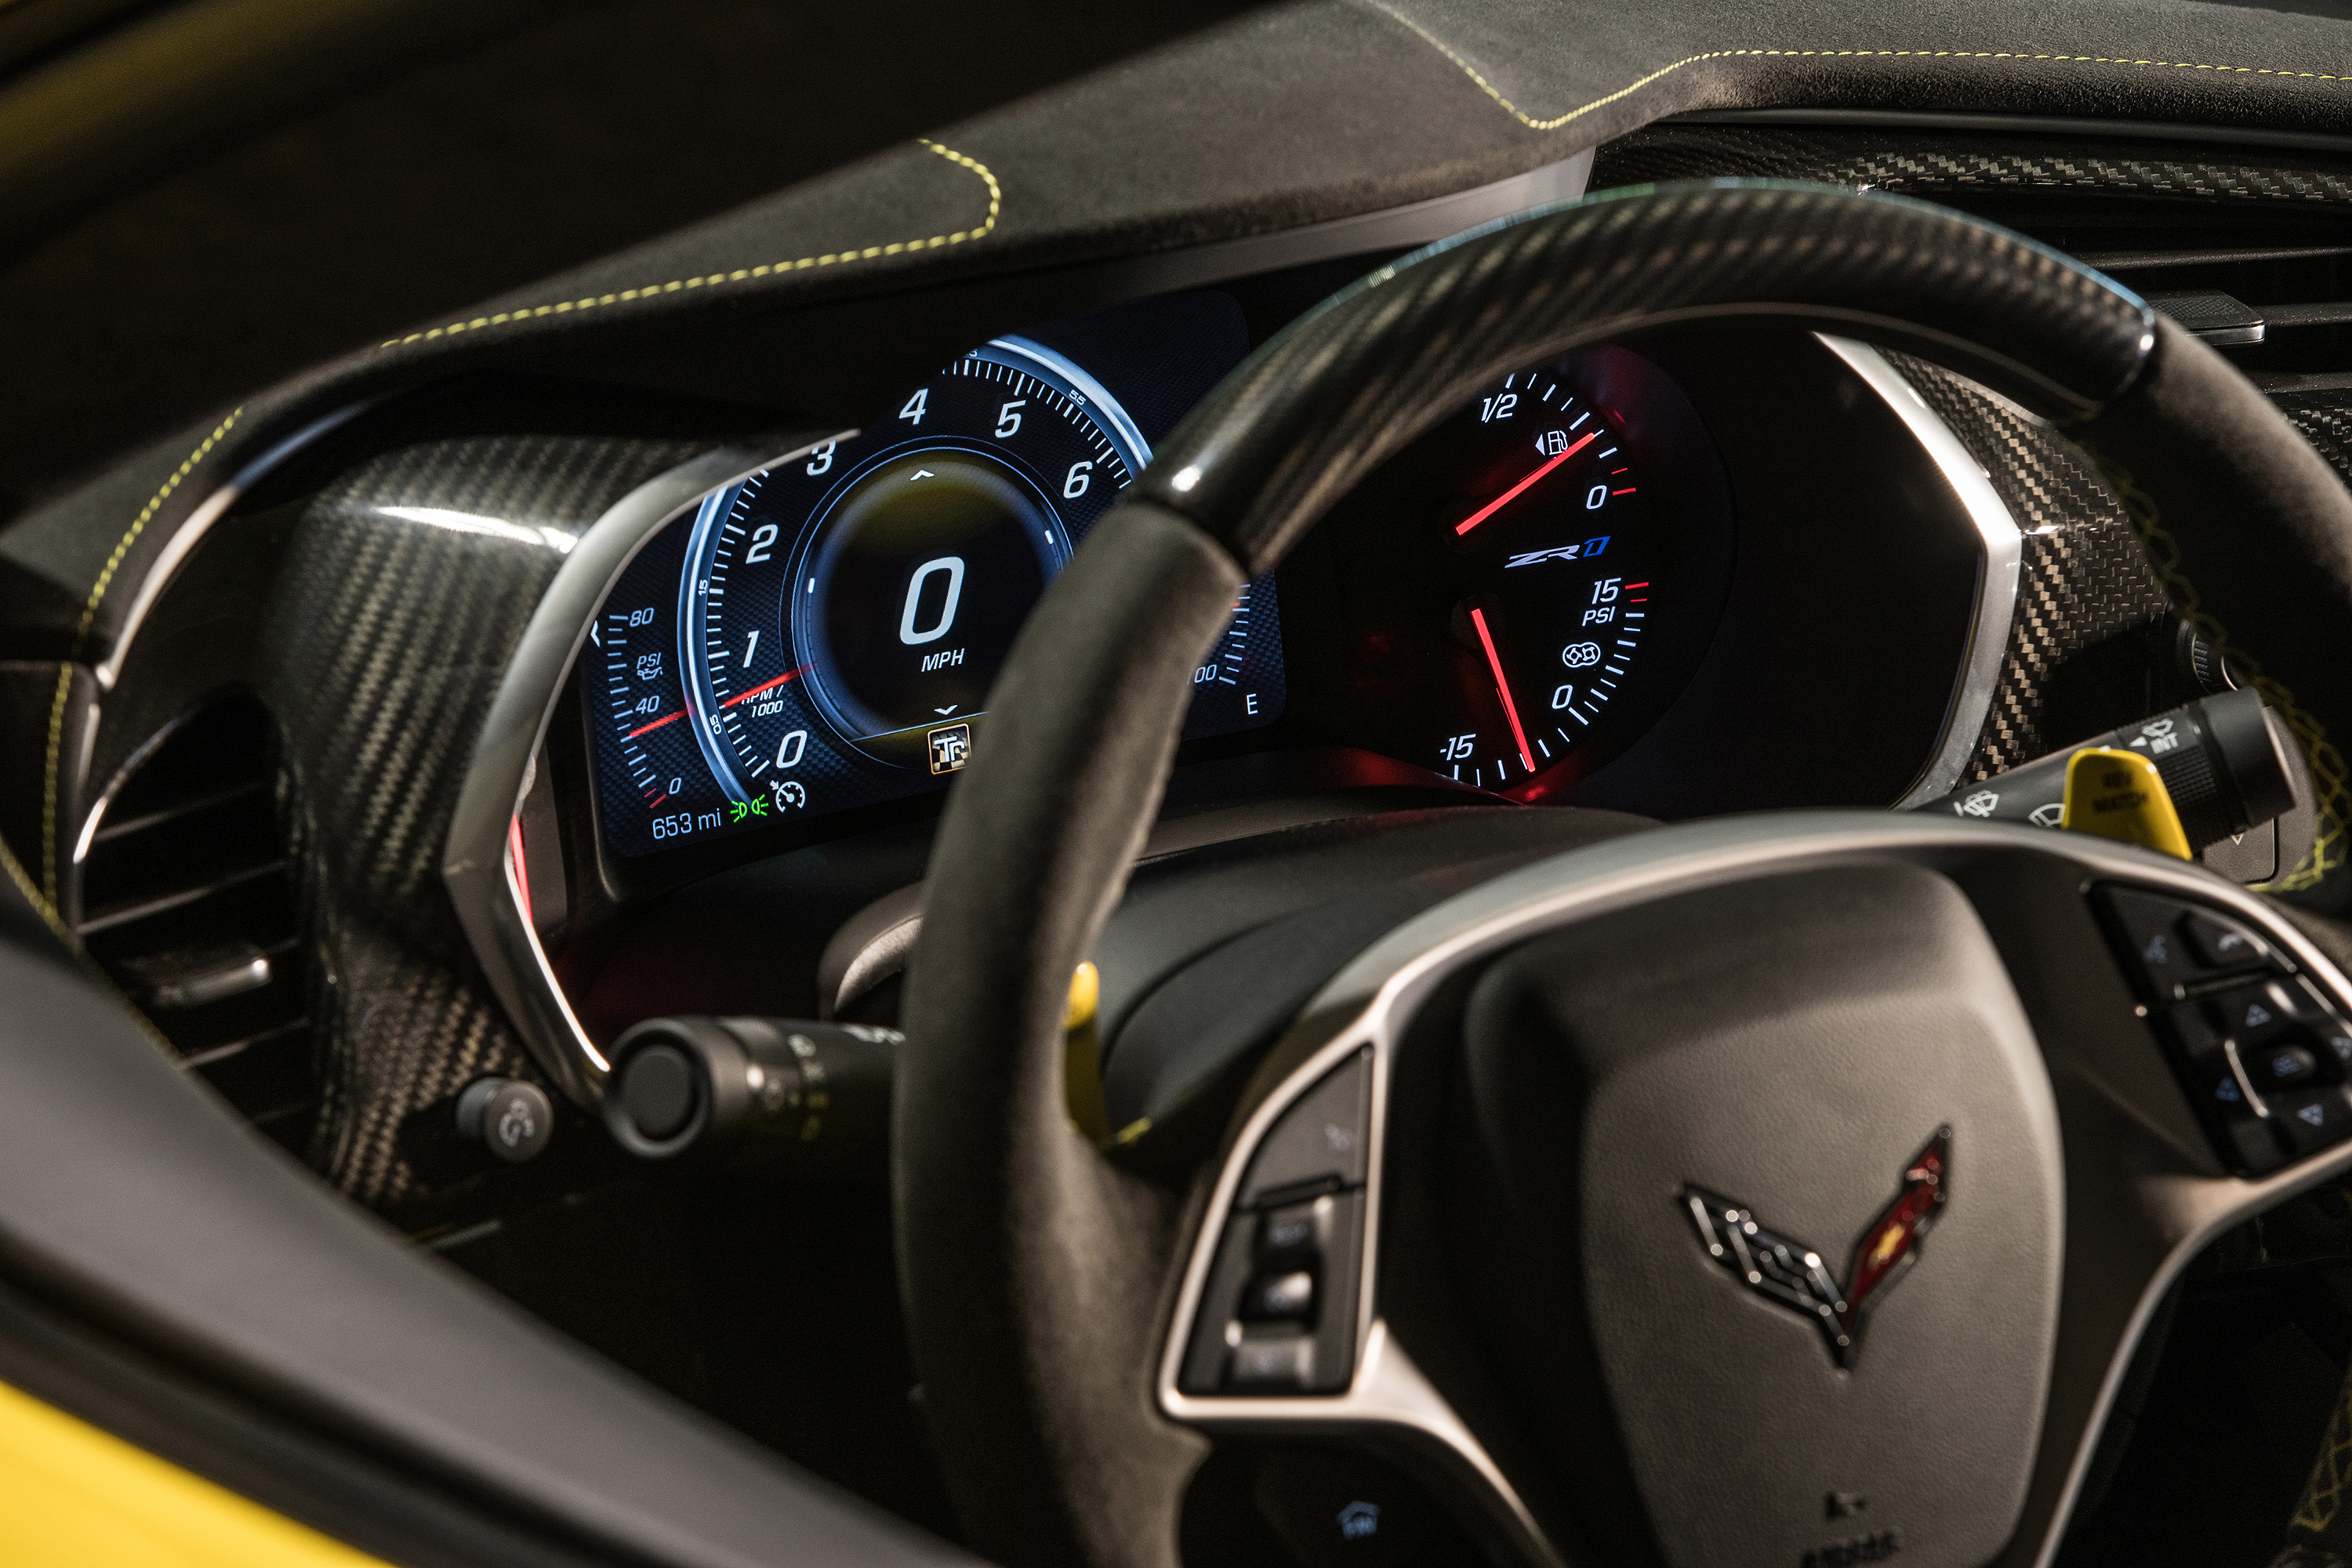 2019 chevrolet corvette zr1 steering wheel dashboard